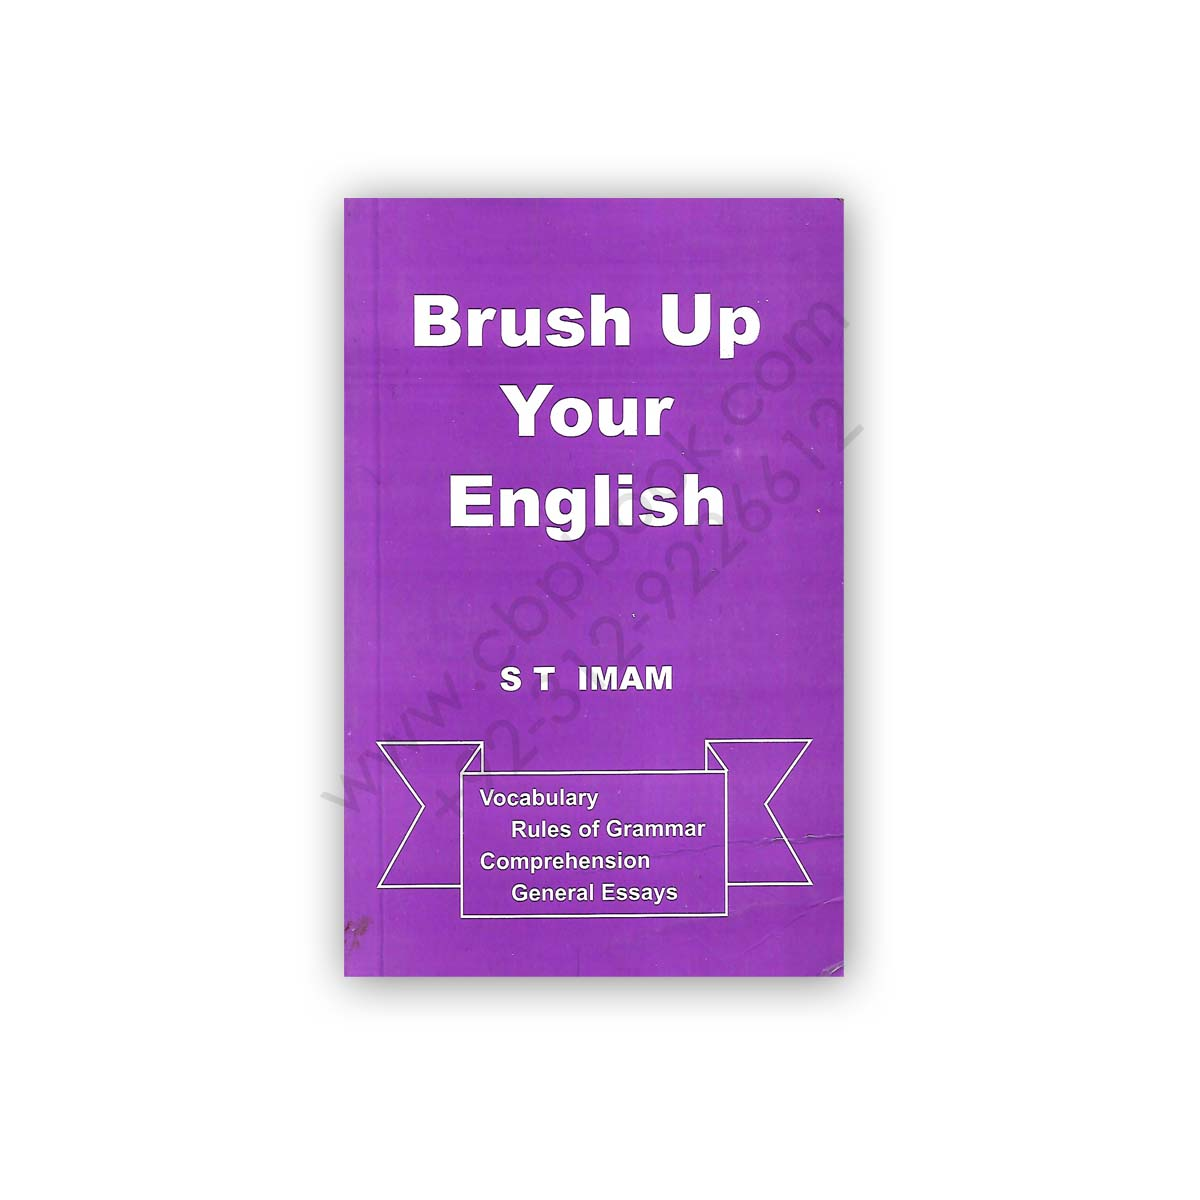 Brush Up Your English By S T Imam (Vocabulary, Grammar